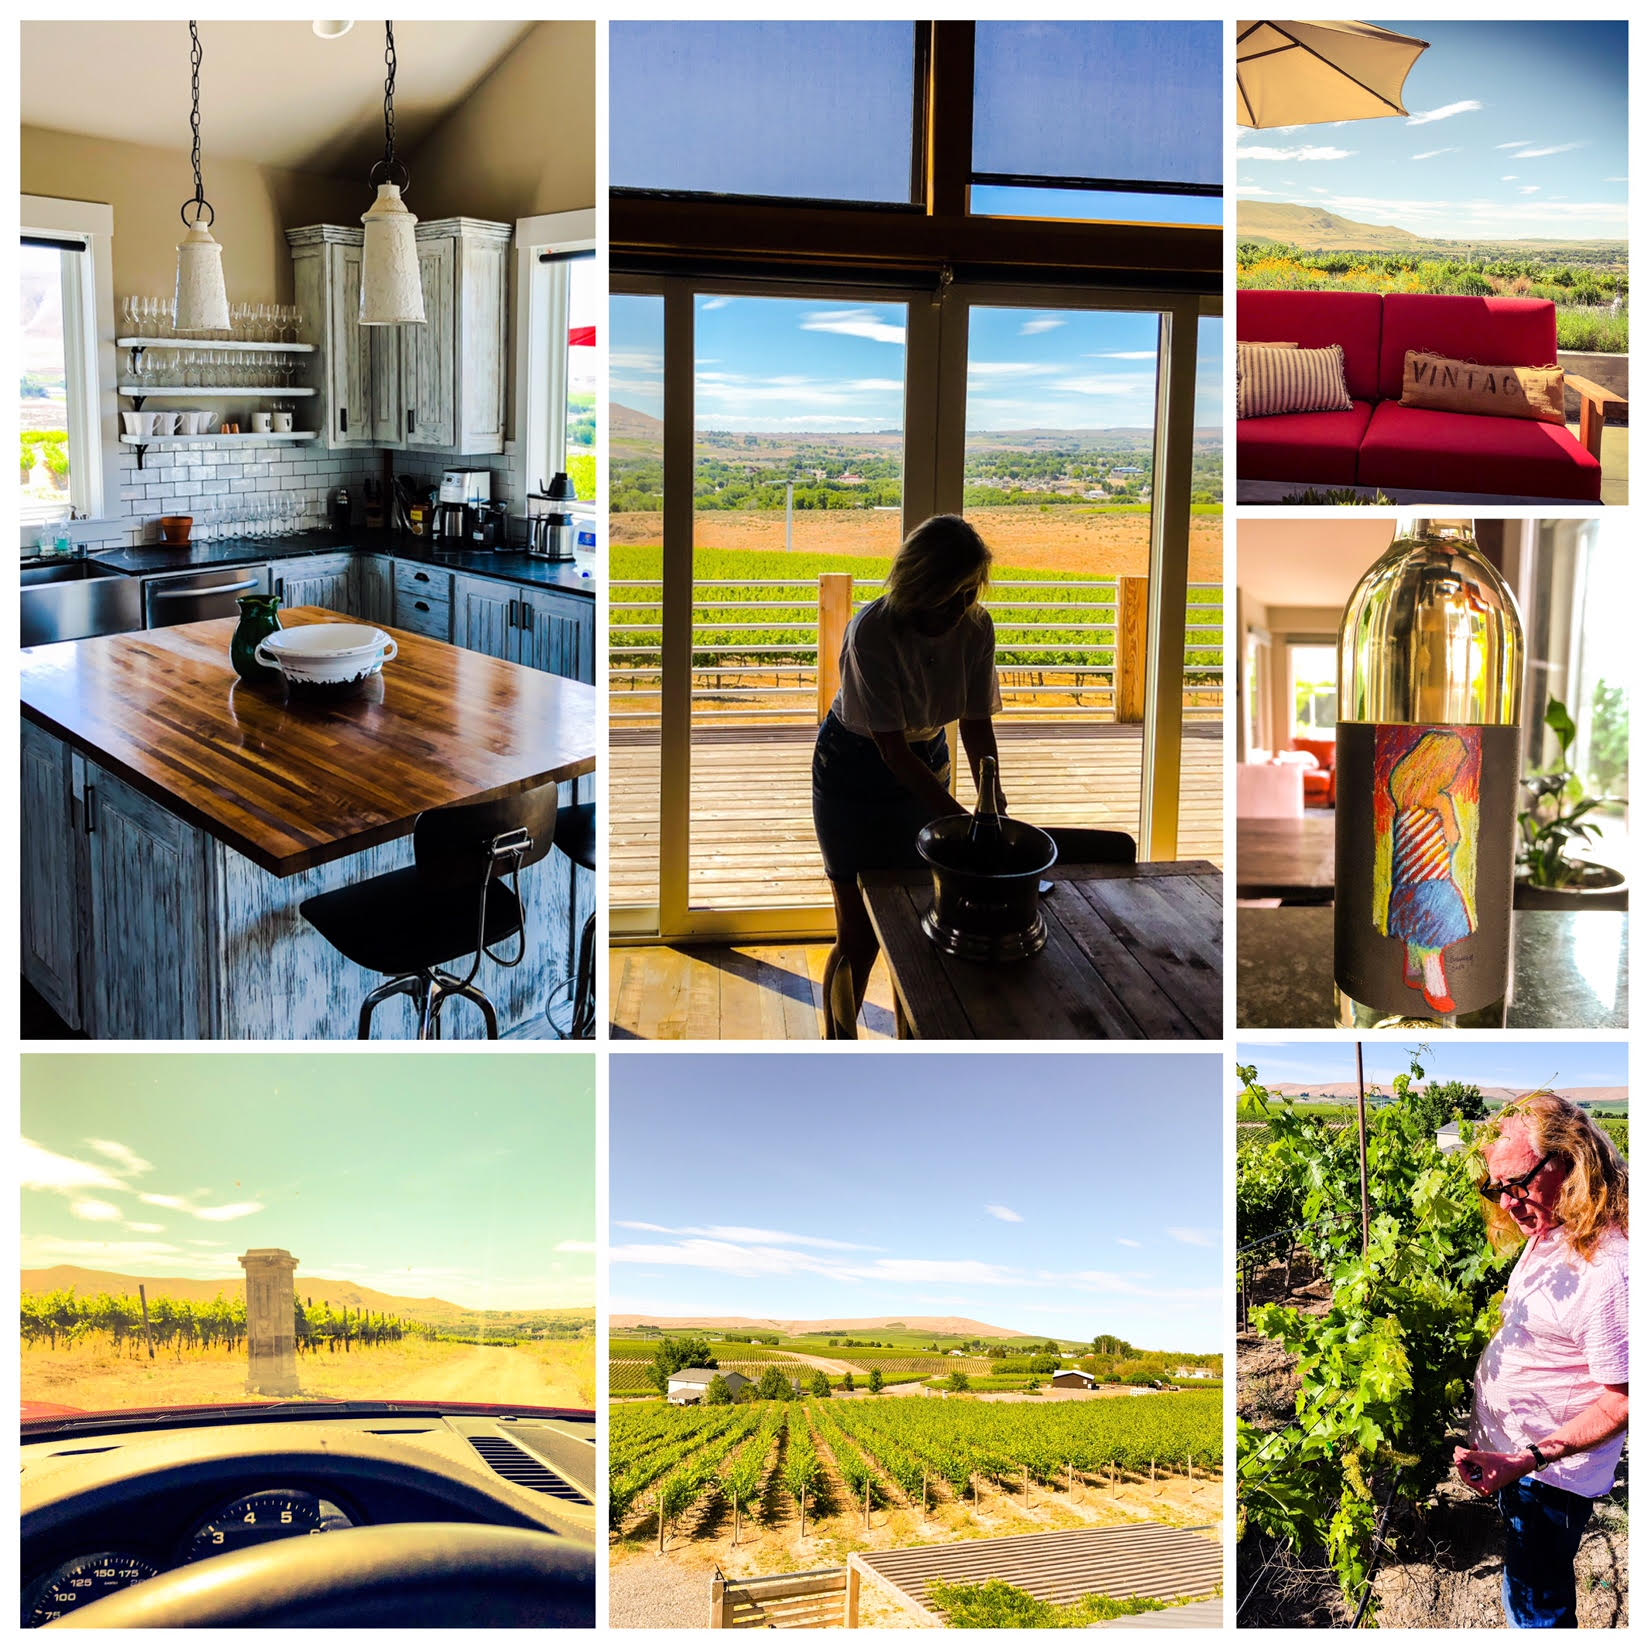 It was a memorable visit to one of the stunning wineries on the west coast, Upchurch Vineyard.